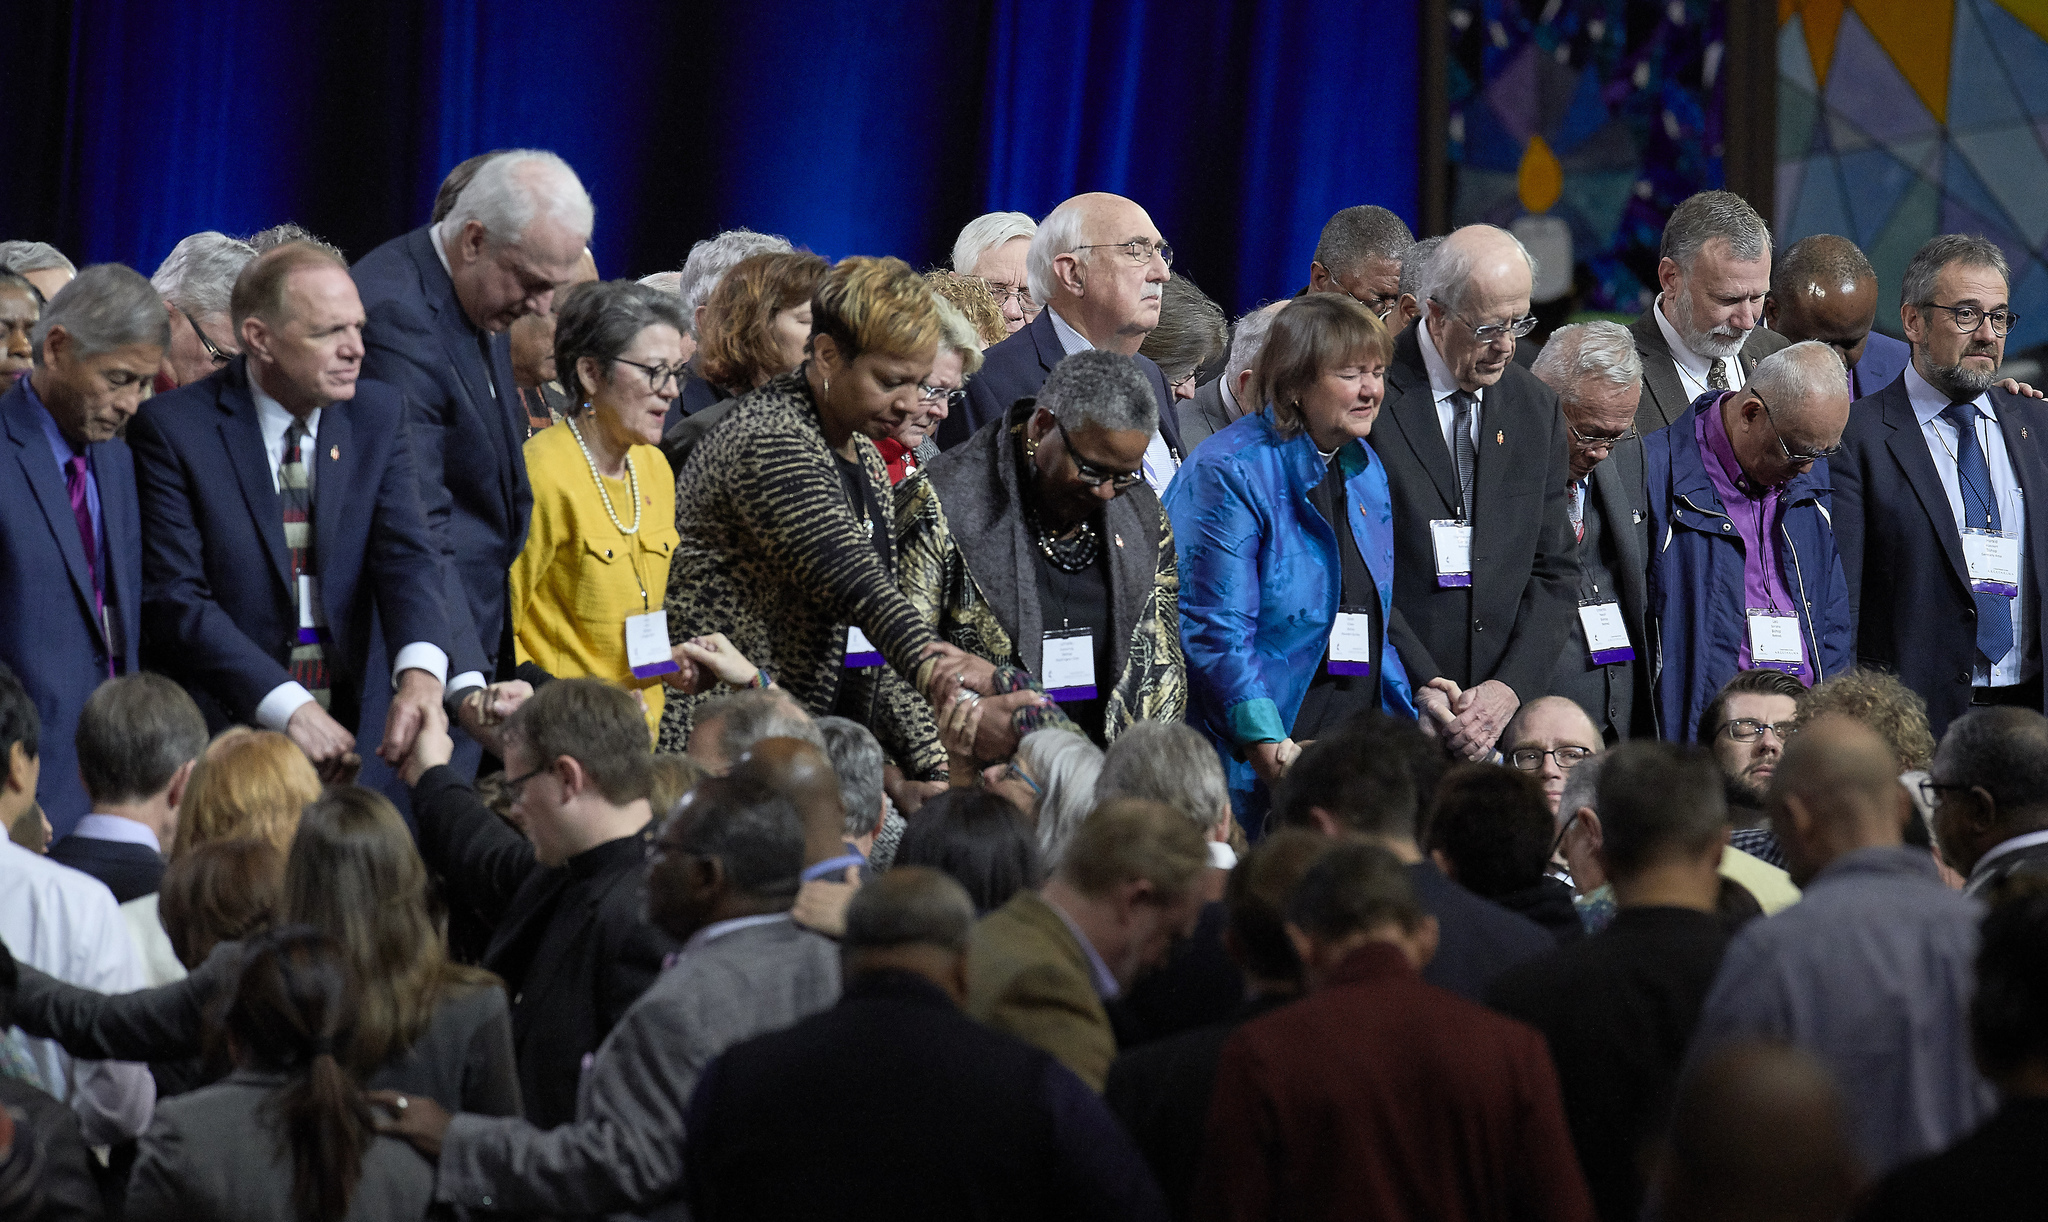 United Methodist bishops and delegates gather together to pray at the front of the stage before a key vote on church policies about homosexuality on February 26, 2019, during the Special Session of the General Conference of The United Methodist Church, held in St. Louis, Missouri. Photo by Paul Jeffrey, UMNS.